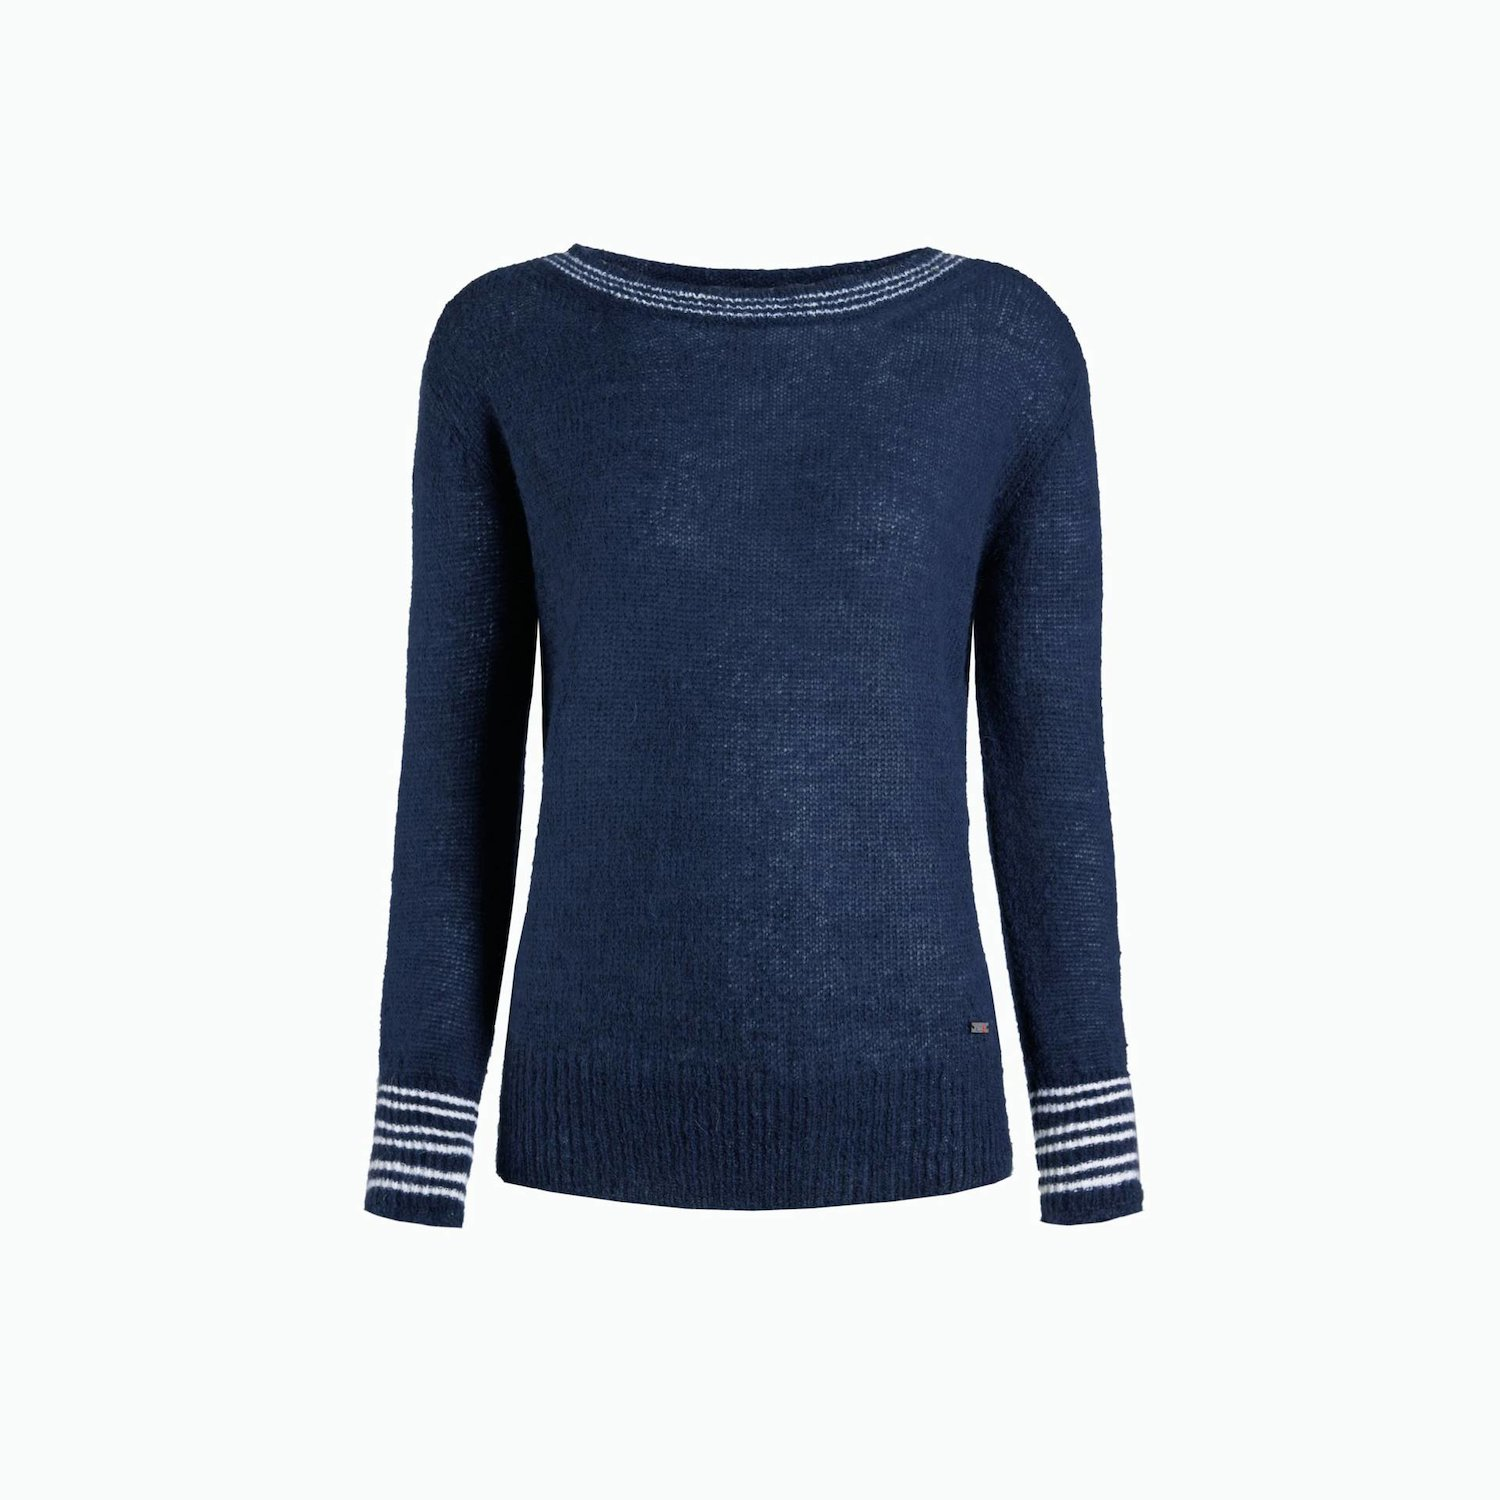 B113 Jumper - Navy